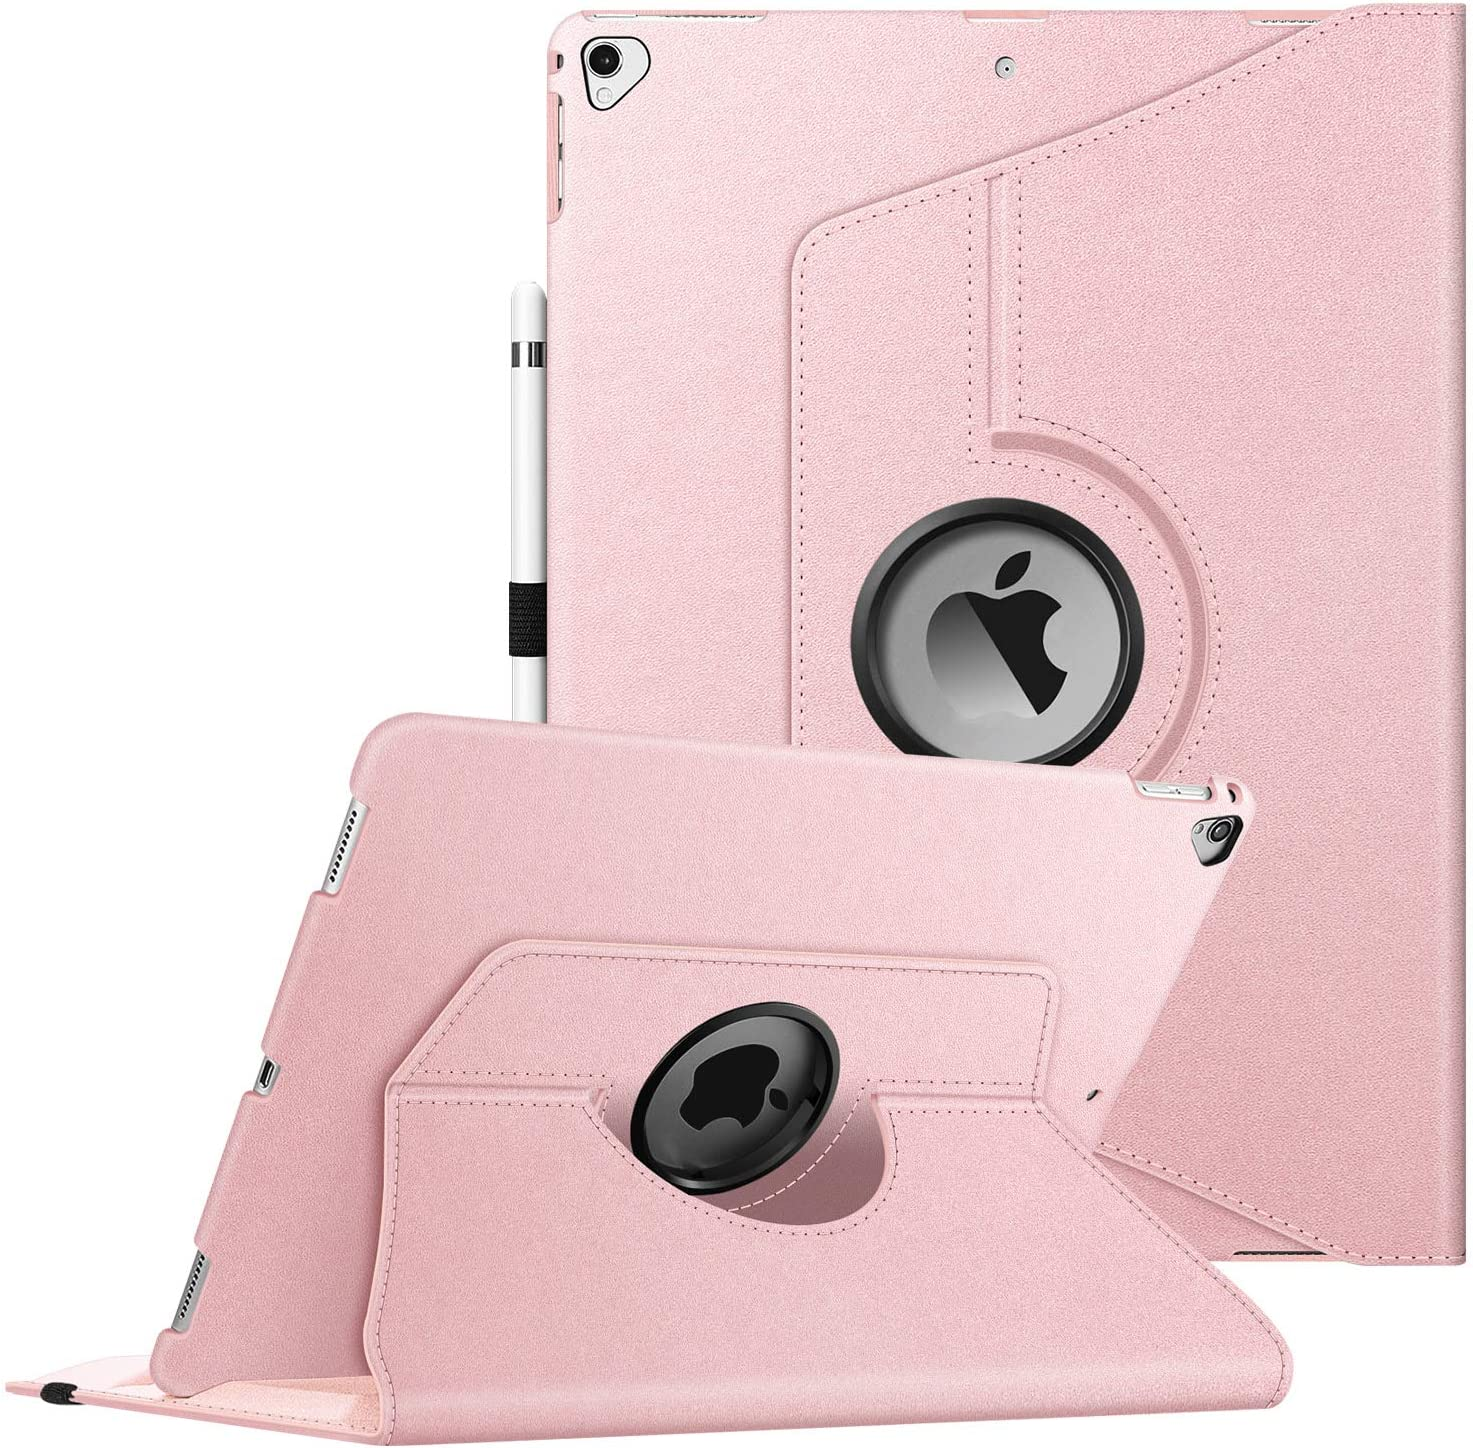 Fintie Rotating Case for iPad Pro 12.9 (2nd Gen) 2017 / iPad Pro 12.9 (1st Gen) 2015 - 360 Degree Rotating Stand Case with Smart Protective Cover Auto Sleep/Wake, Rose Gold